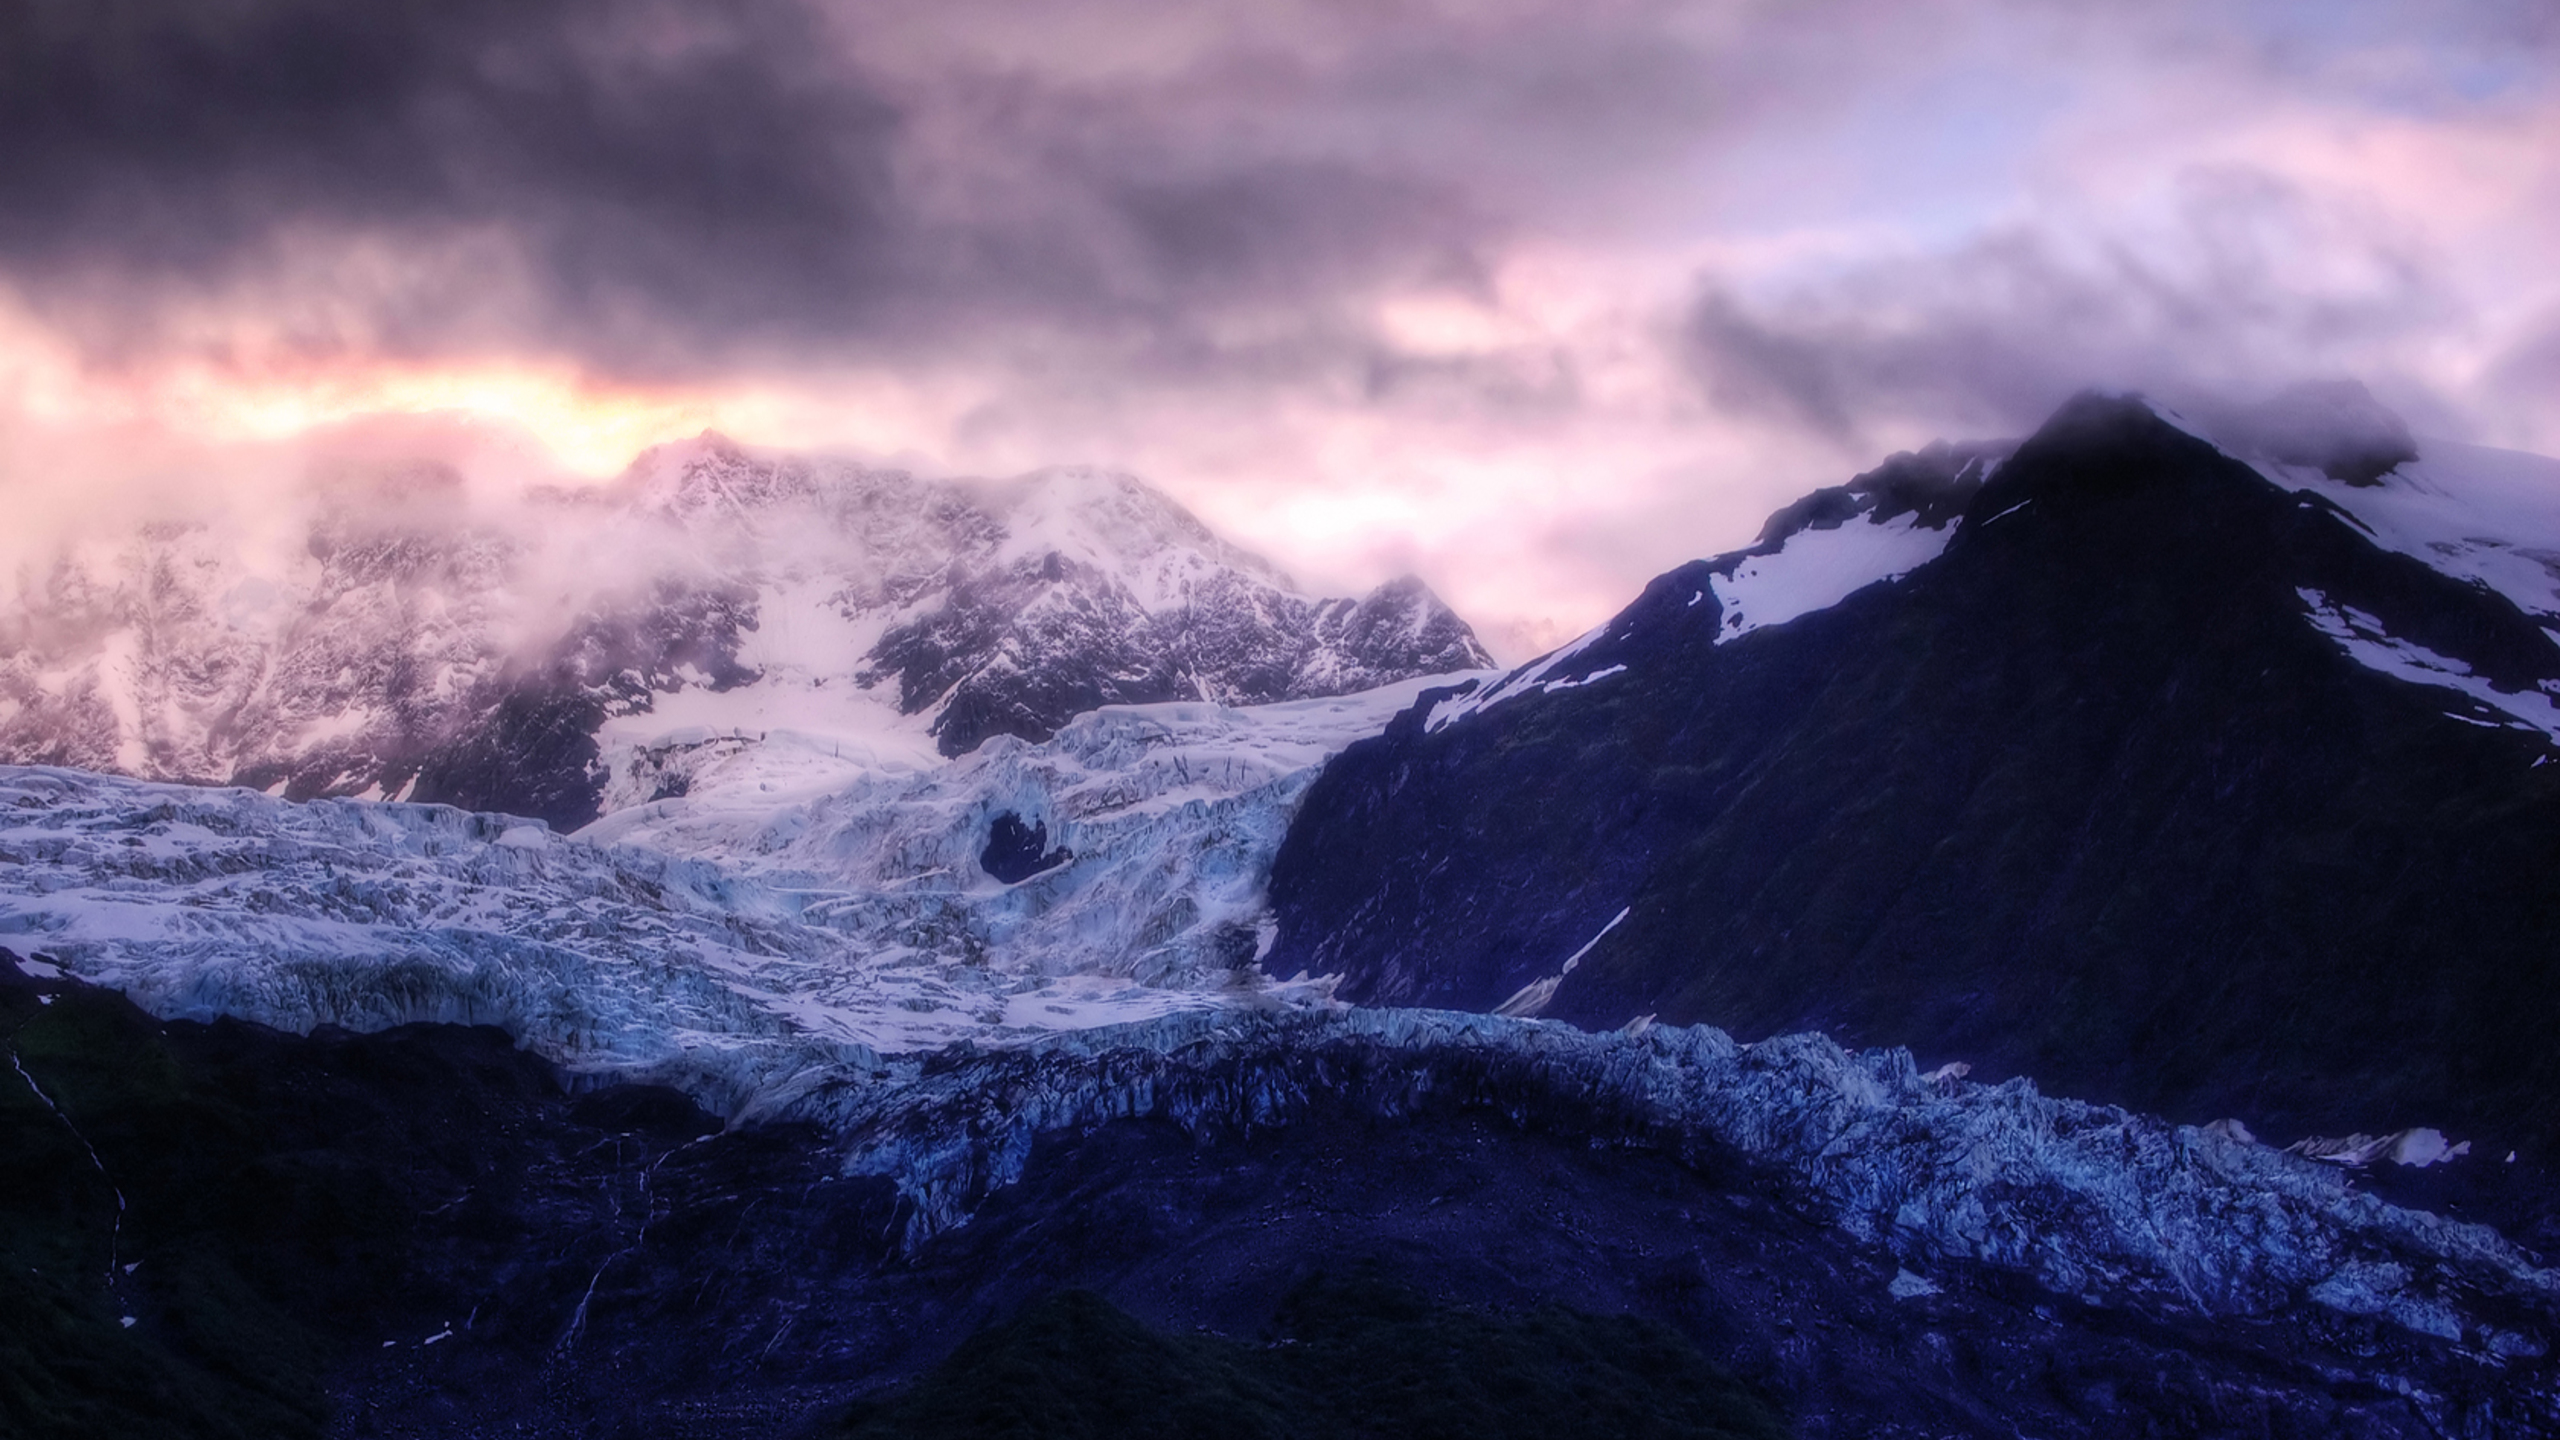 Simple Wallpaper Mountain 1440p - landscape-snow-ice-mountains-pic-2560x1440  Gallery_801392.jpg